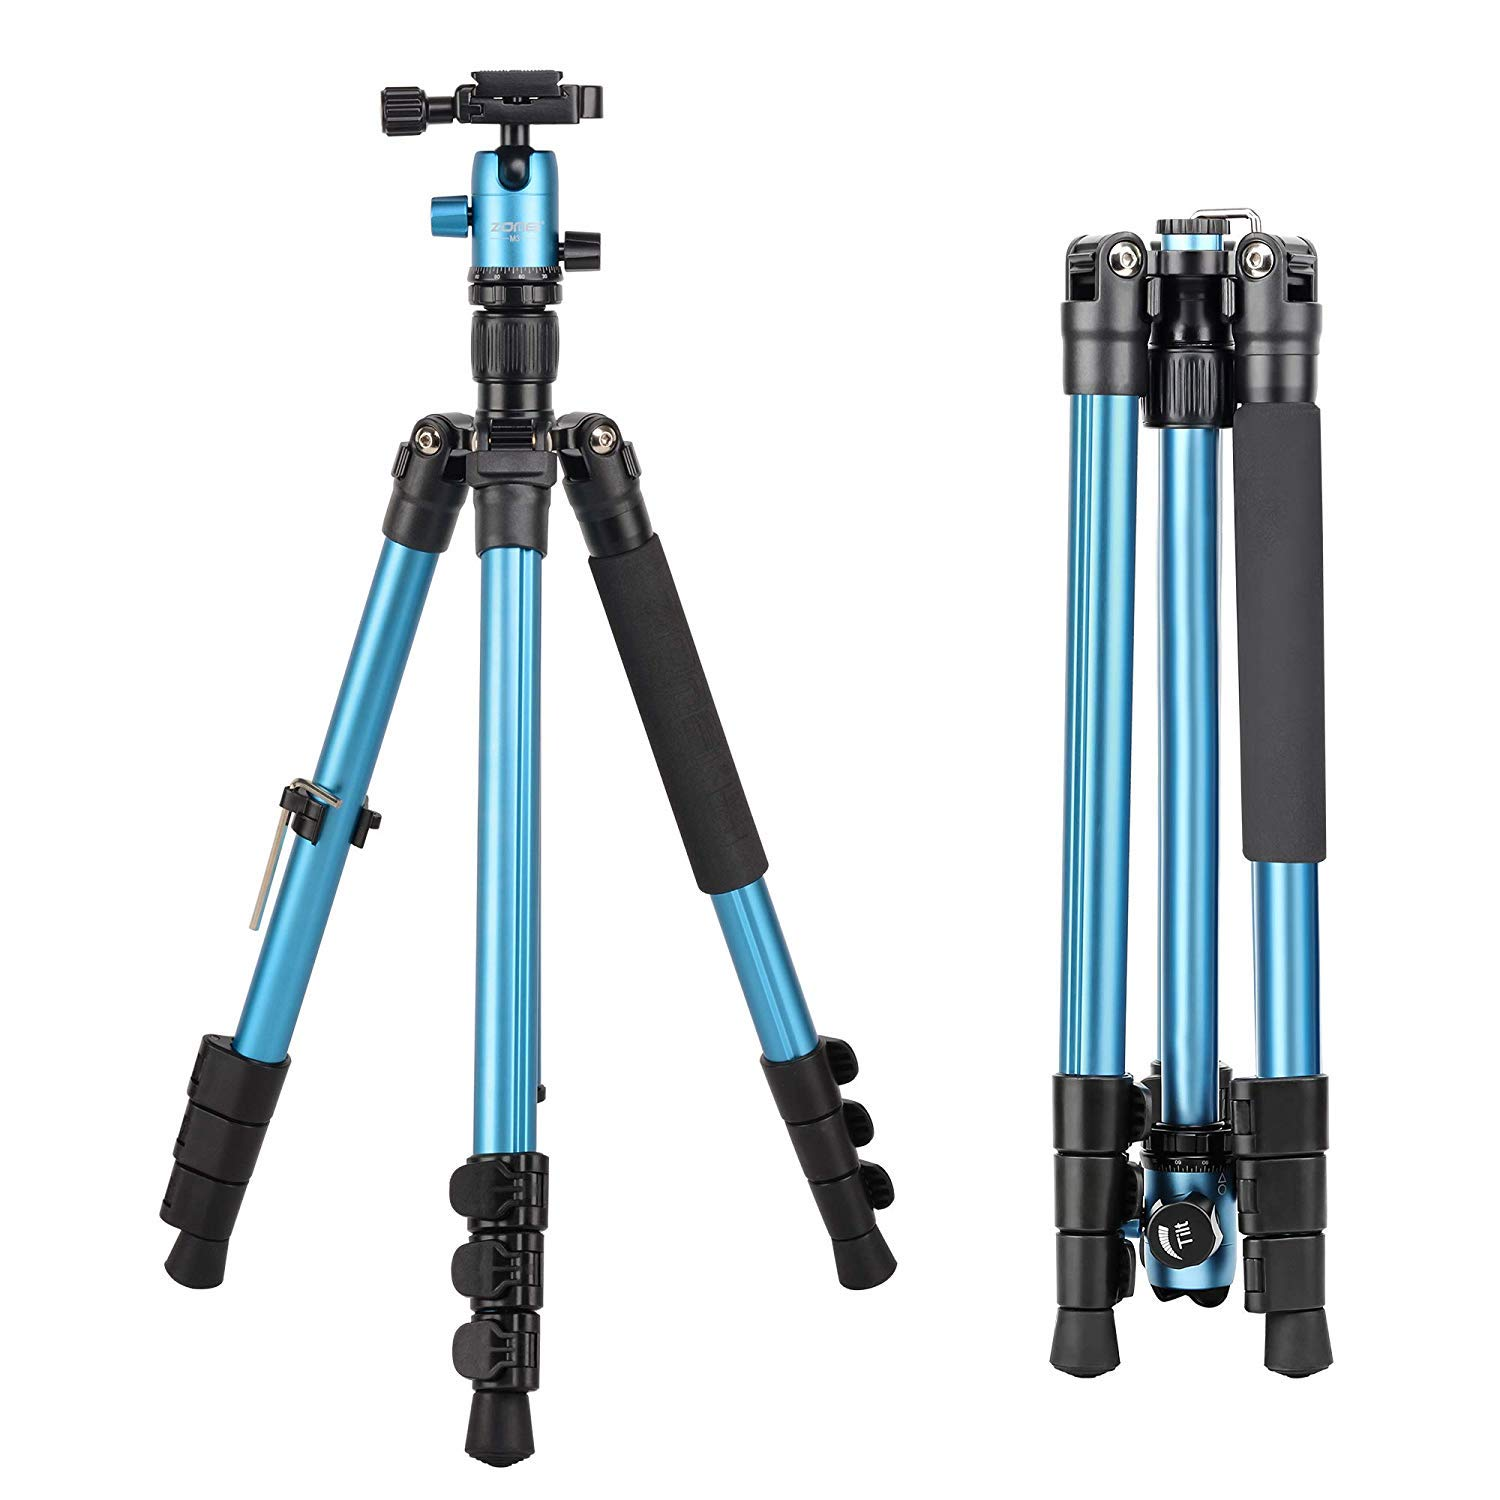 Zomei M3Compact Light Weight Travel Professional Tripod with 360 Degree Ball Head and Bag for DSLR Canon, Nikon, Sony Camera (Blue)